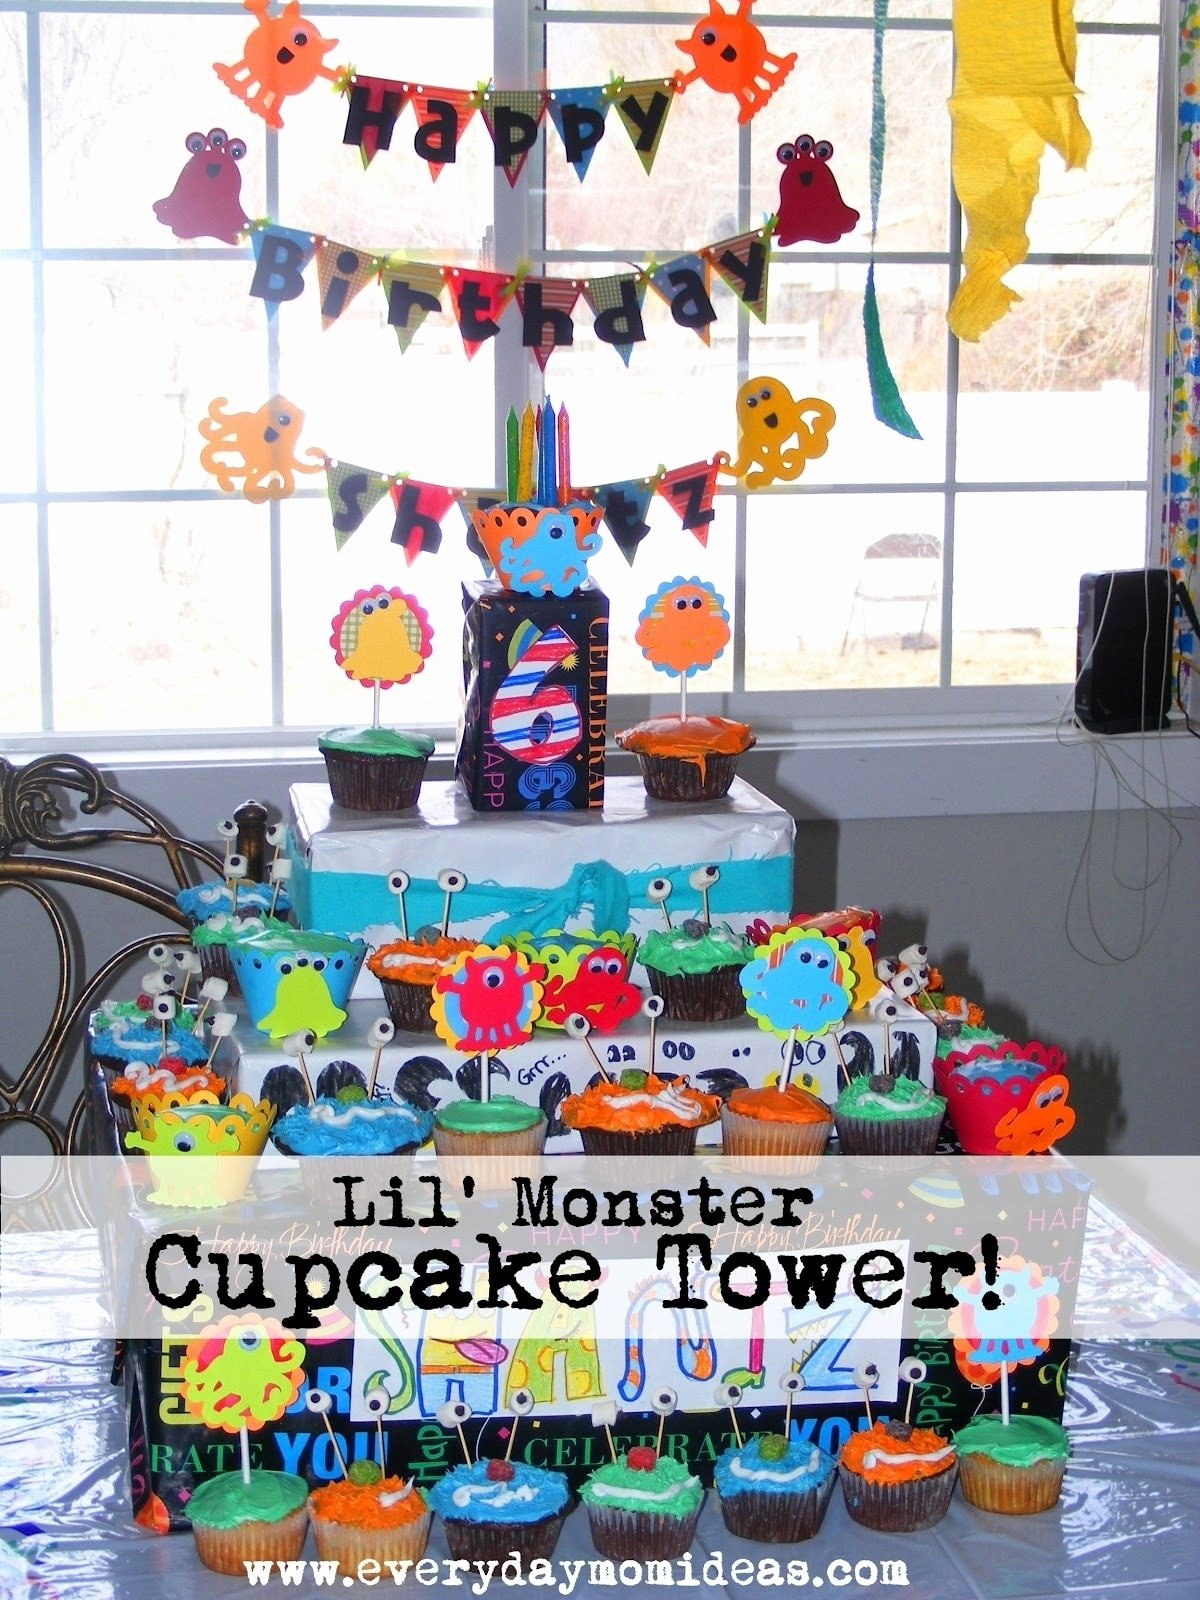 10 Awesome Birthday Ideas For 1 Year Old Boy Room Decor Lovely